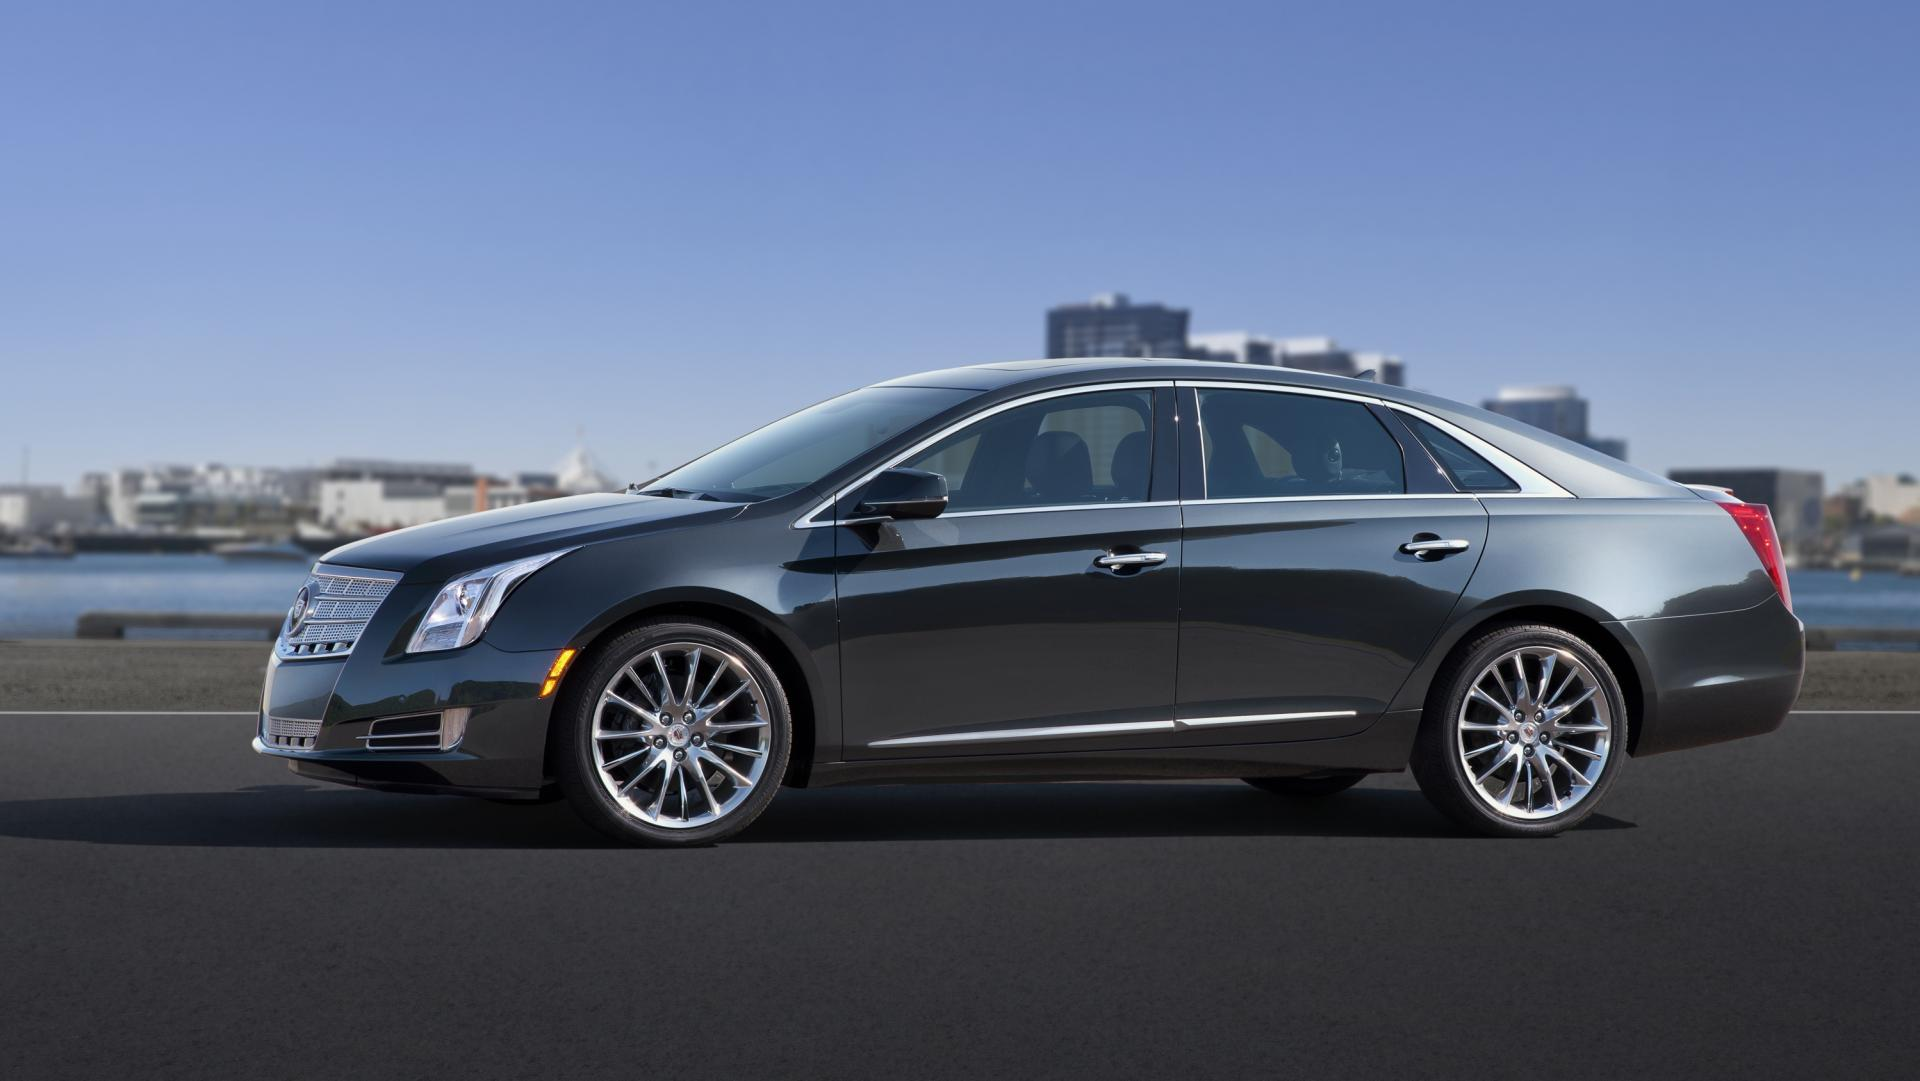 cadillac xts 2013 review car news new cars car reviews. Black Bedroom Furniture Sets. Home Design Ideas